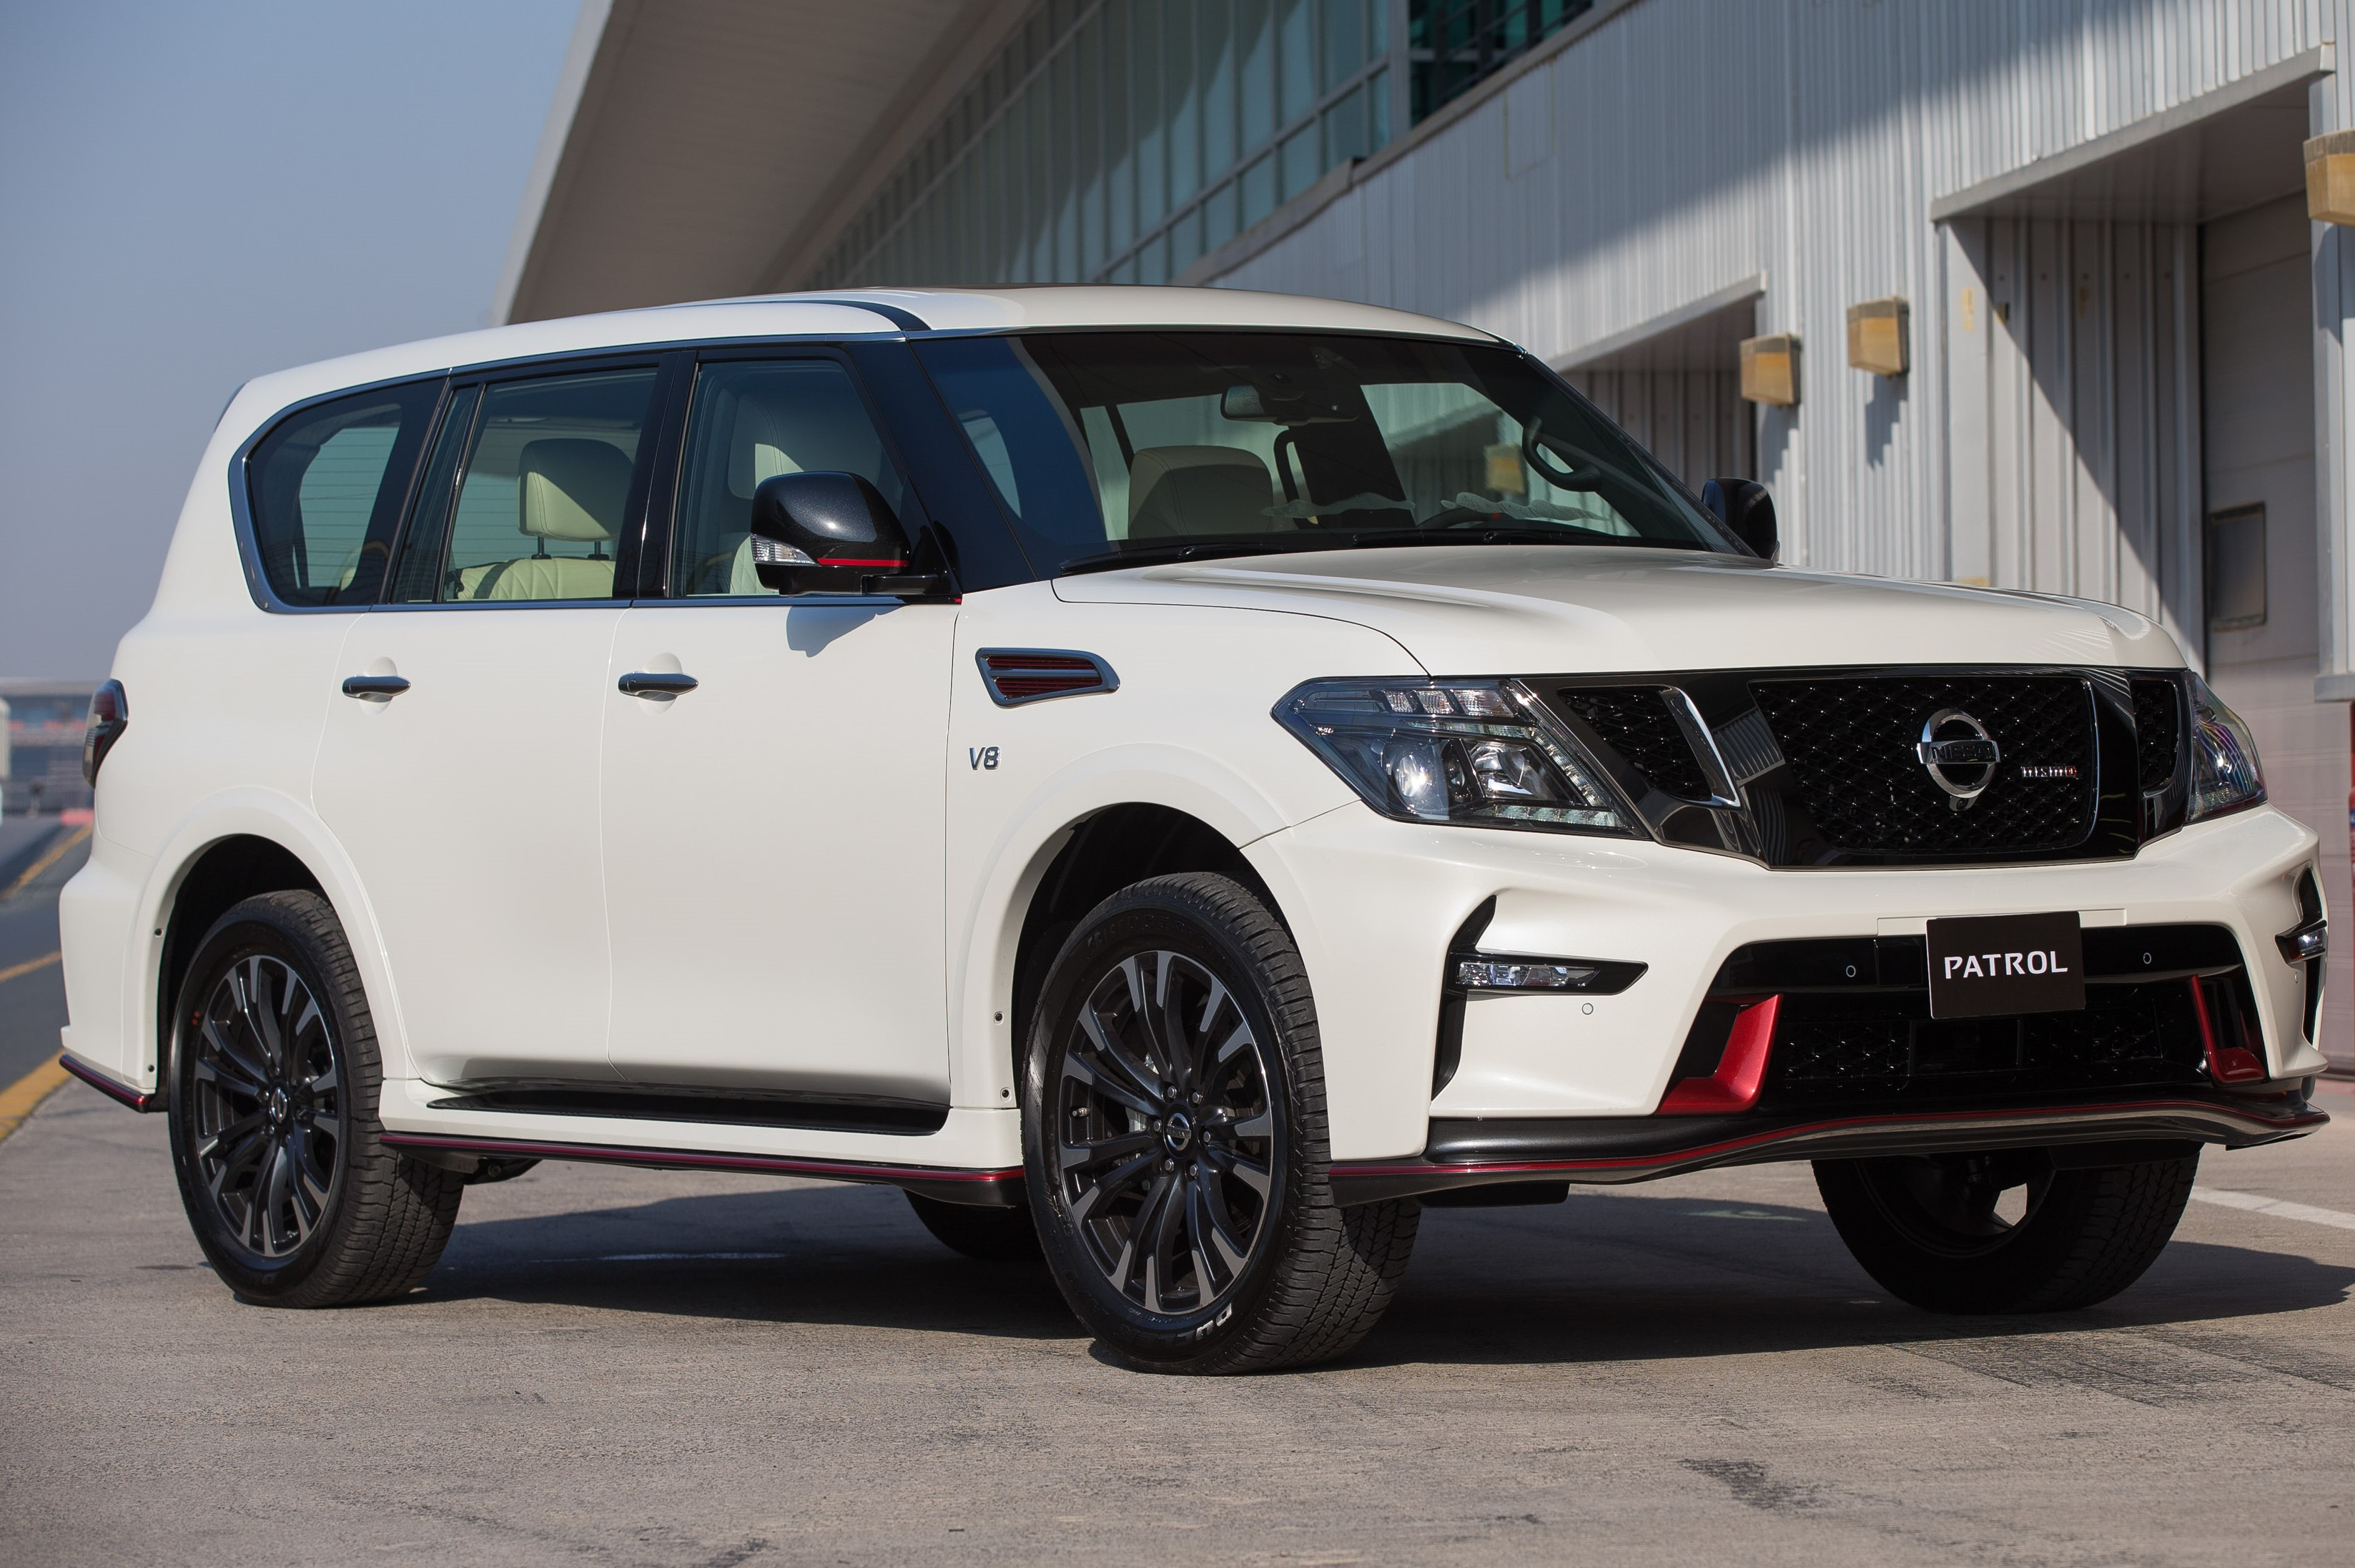 Nissan S Nismo Brand Middle East Debut And Nismo Patrol S World Premiere At Dubai Pitstop